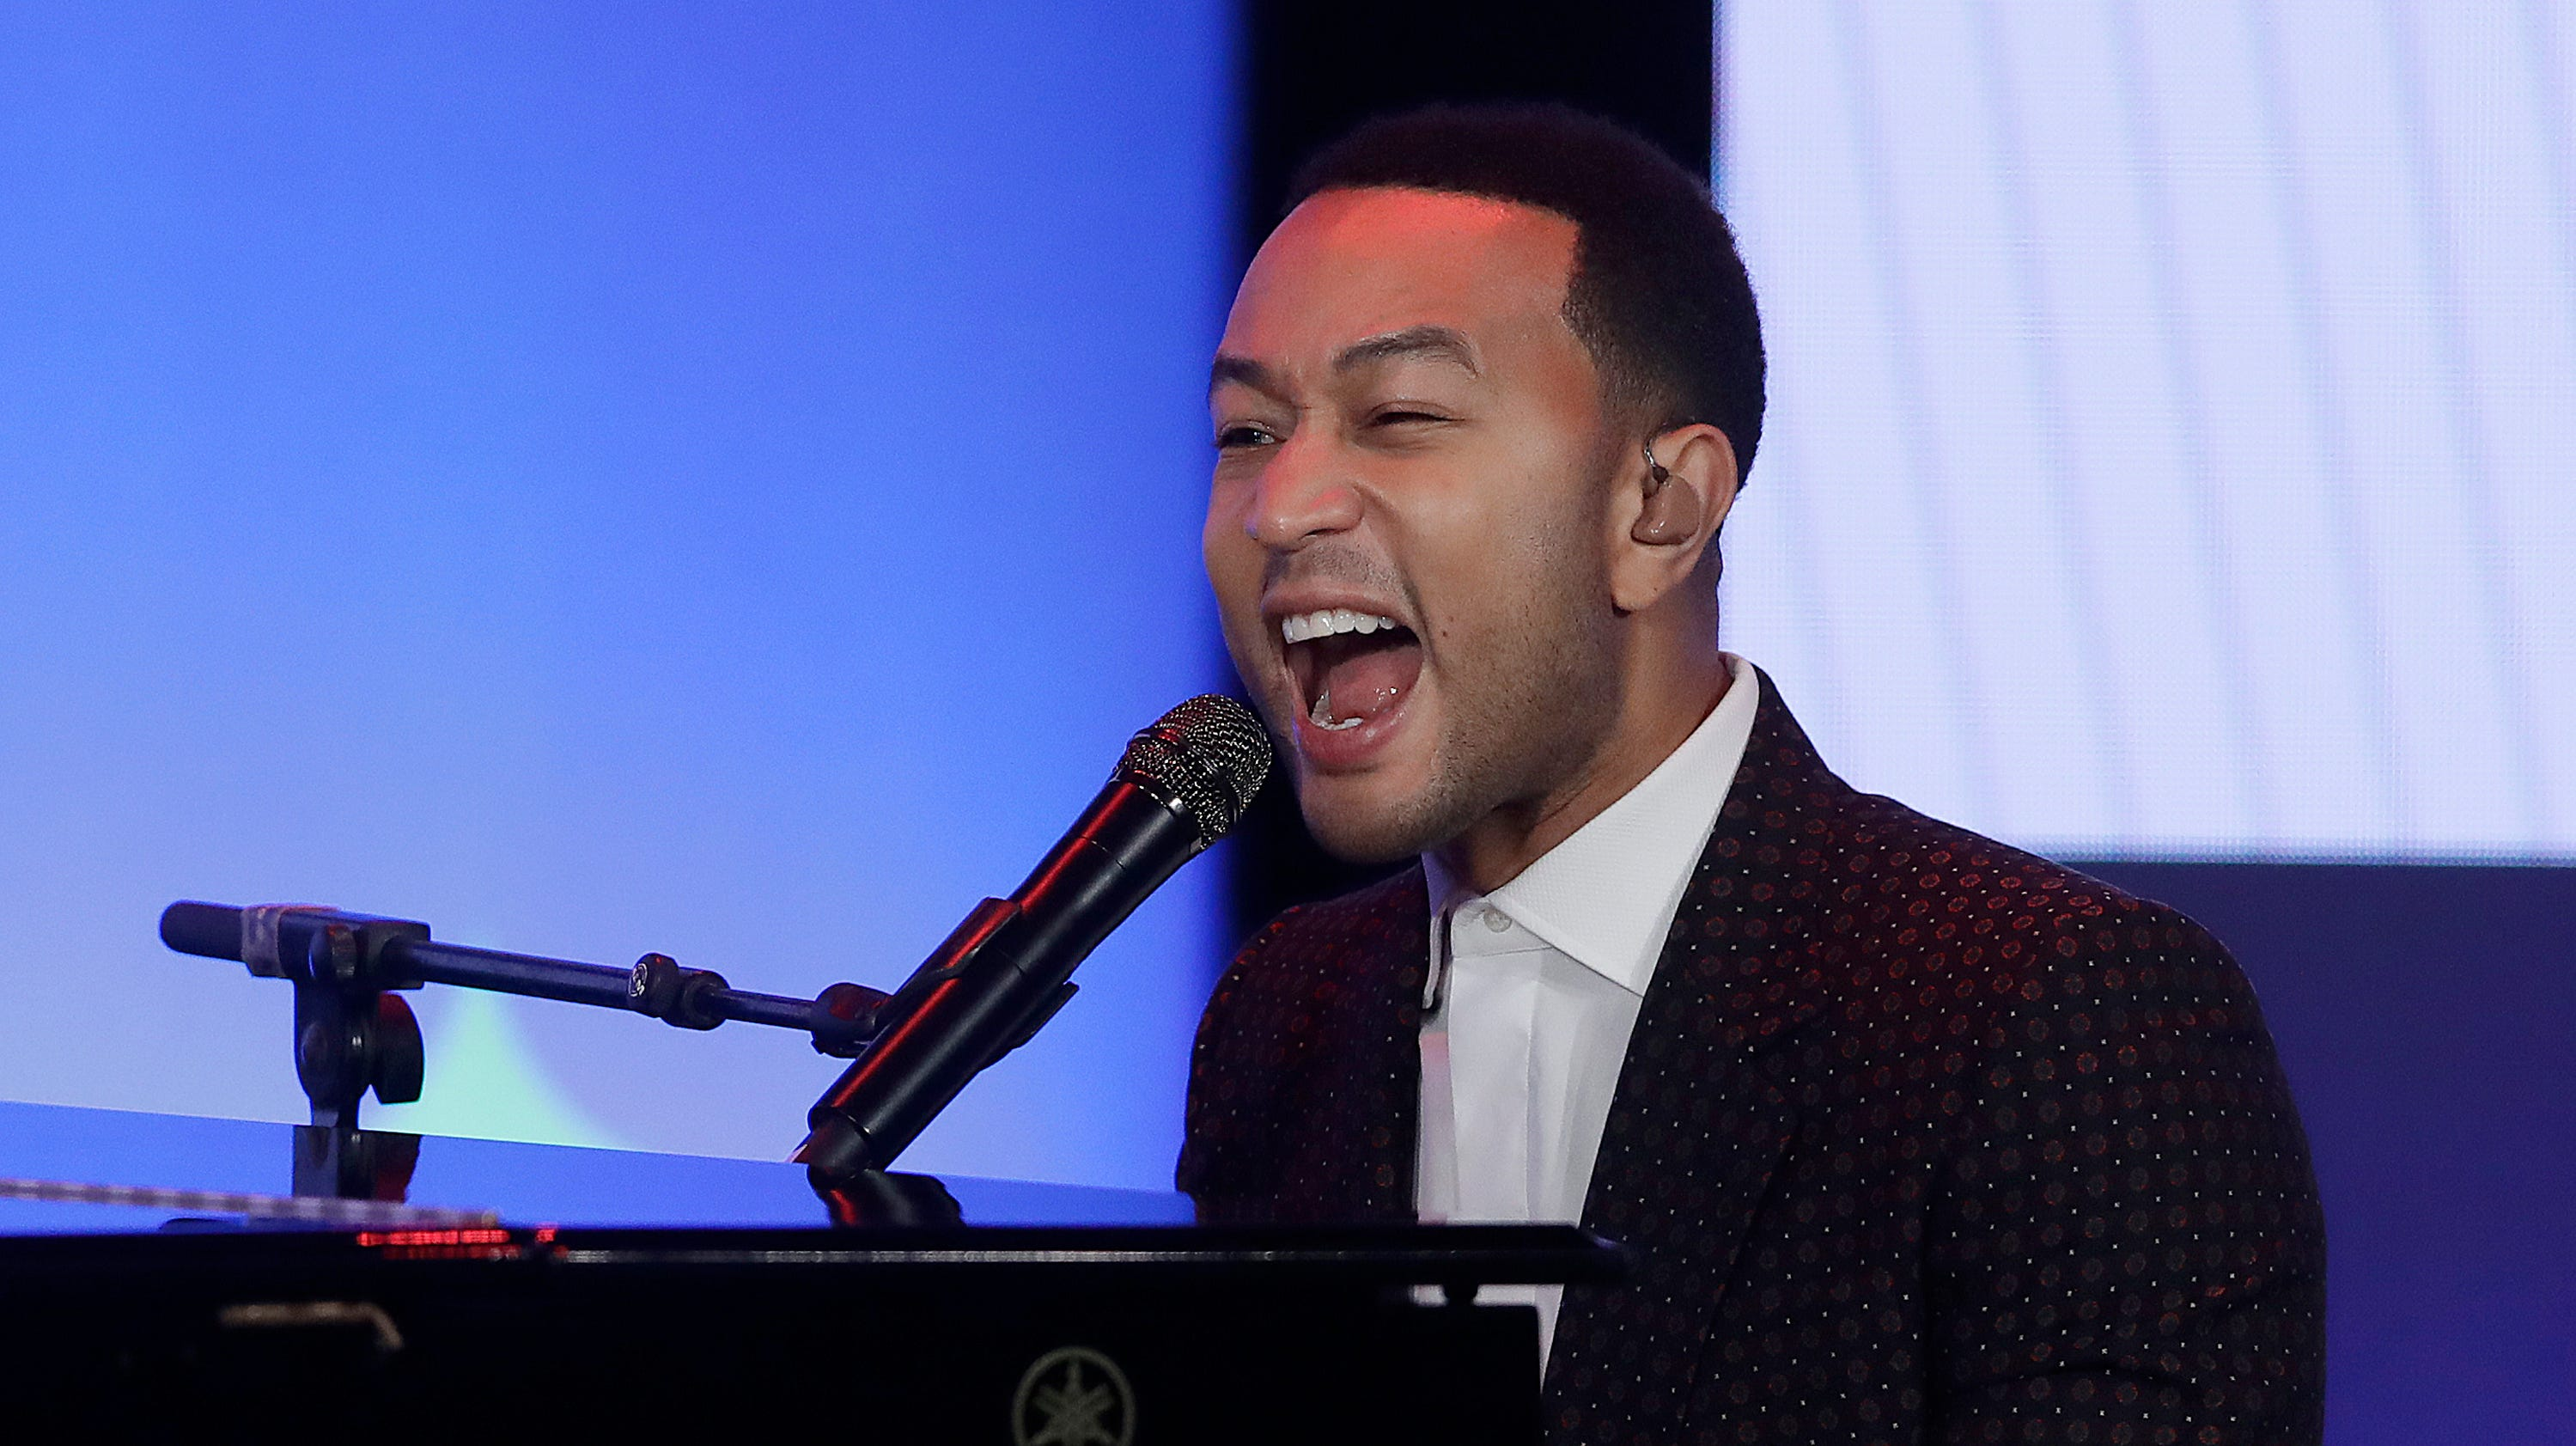 John Legend's son Miles practices for future Grammy Award singing 'Wheels on the Bus'